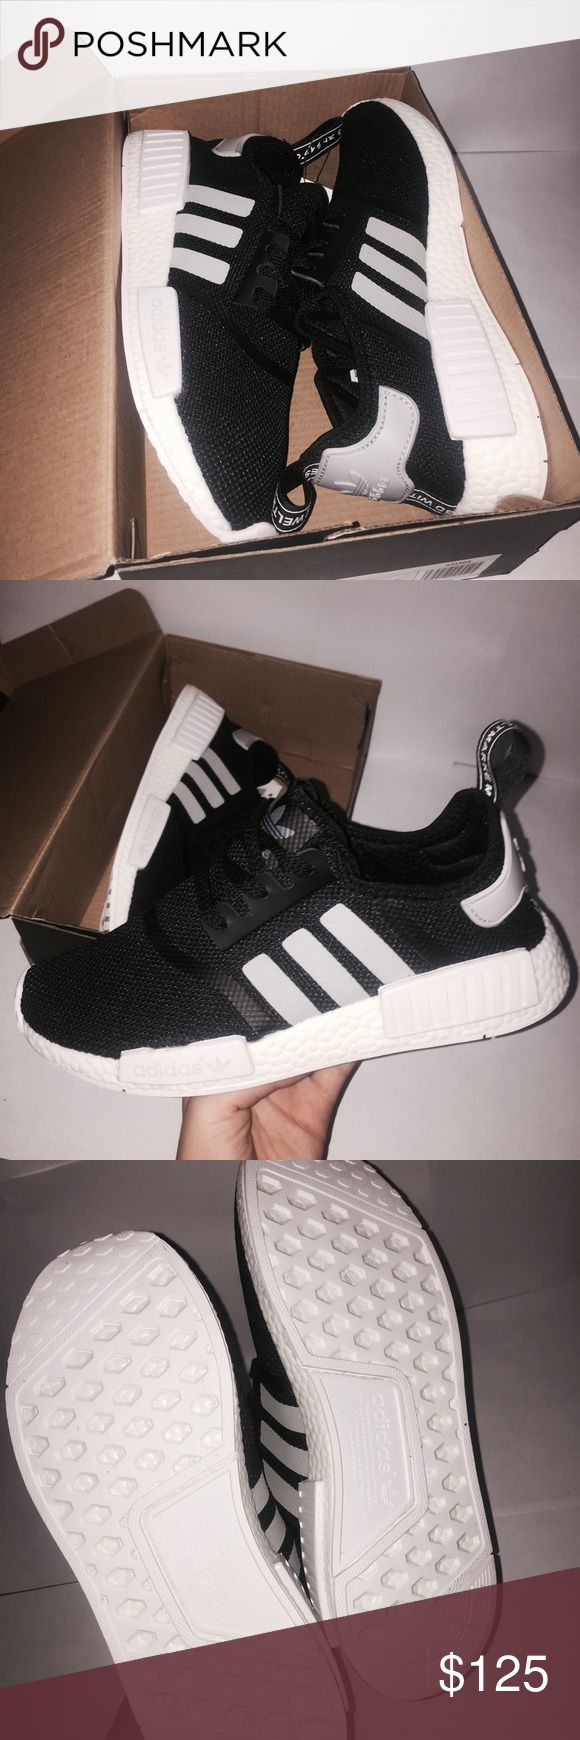 Adidas nmd r1 black xr1 yeezy white Nike women's Sizes: women's 6, women's 6.5, men's 7 = women's 8.5. Brand new w box. Fast shipper! Firm price adidas Shoes Athletic Shoes